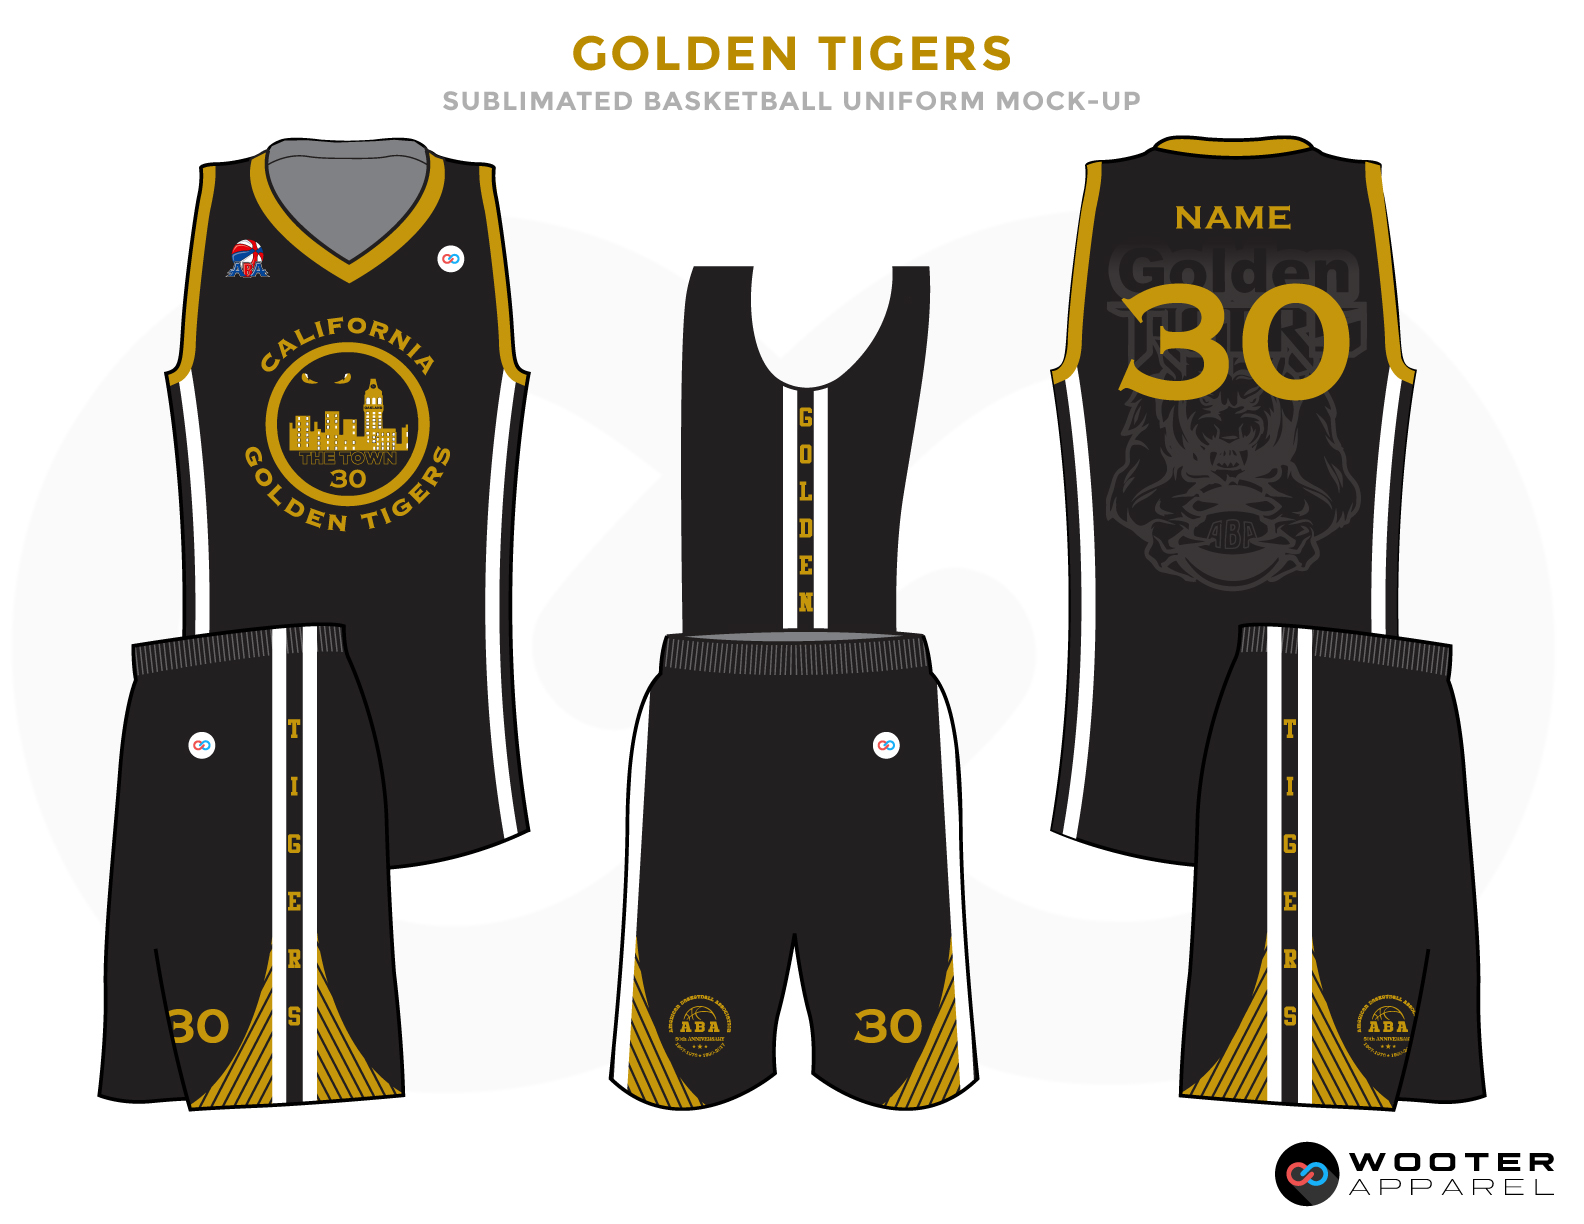 GOLDEN TIGERS Black Grey Golden and White Basketball Uniforms, Jersey and Shorts